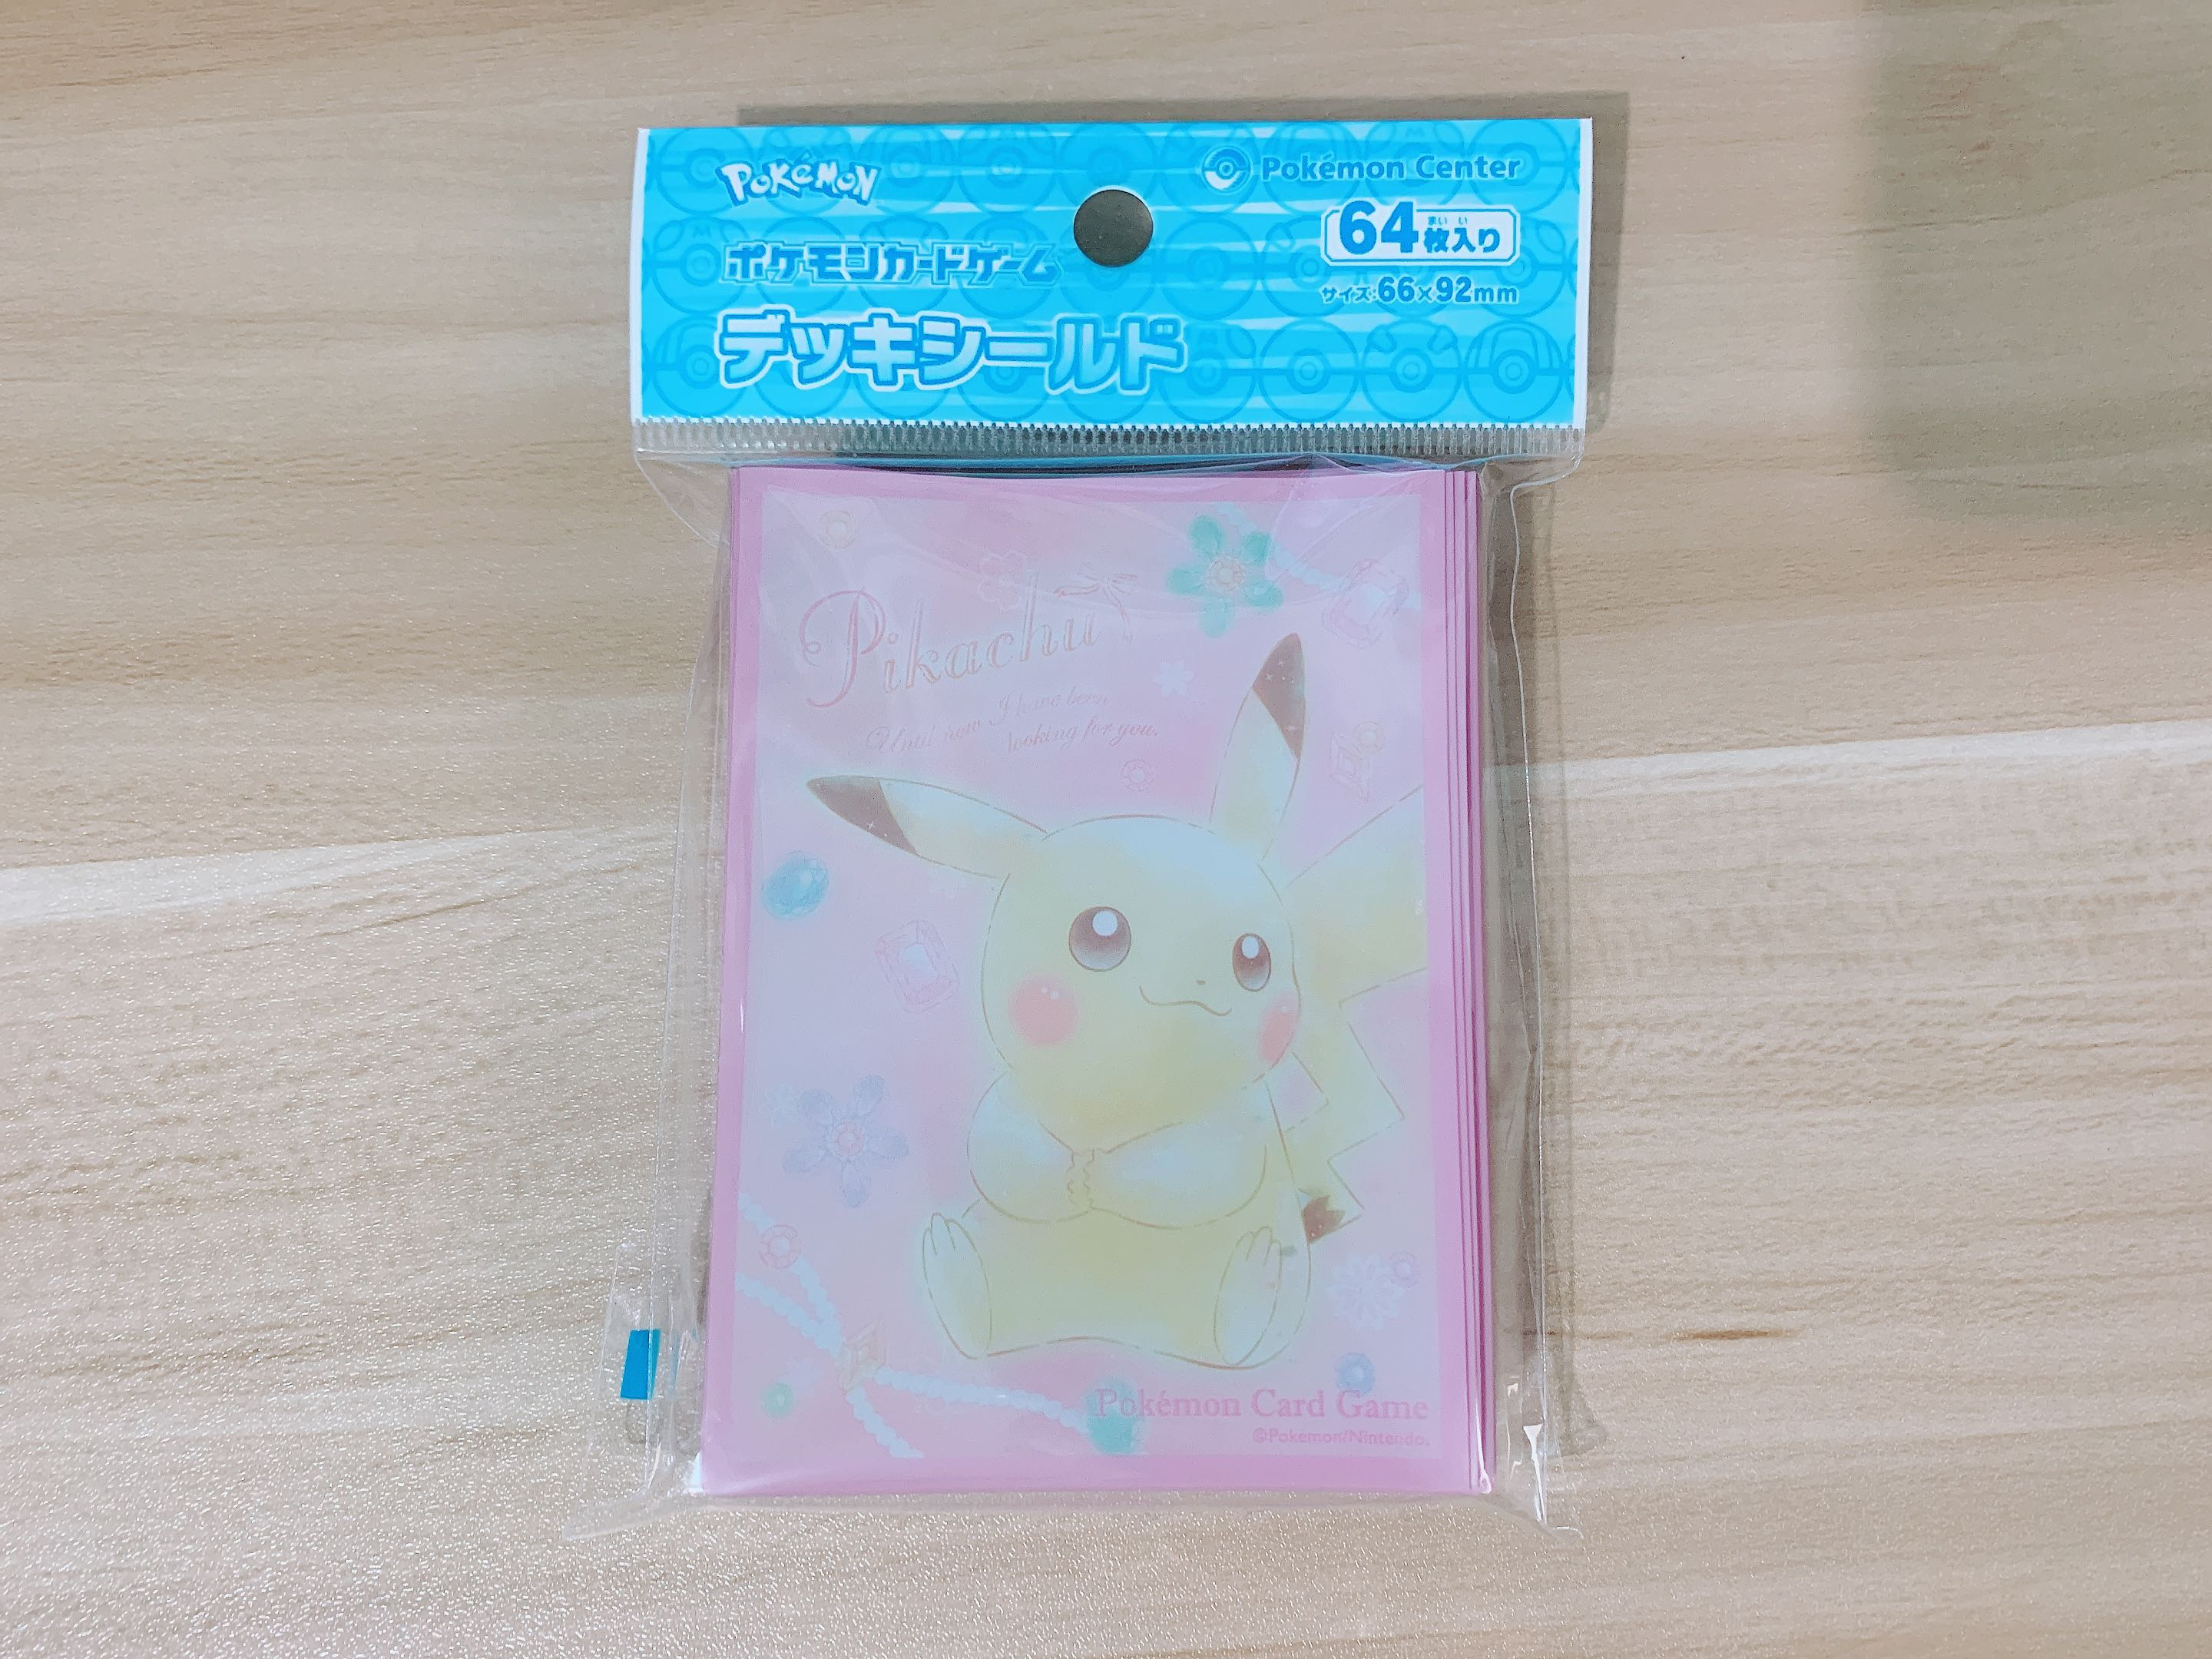 POKÉMON CENTER 2019 PIKACHU JEWEL SET OF 64 DECK SLEEVES